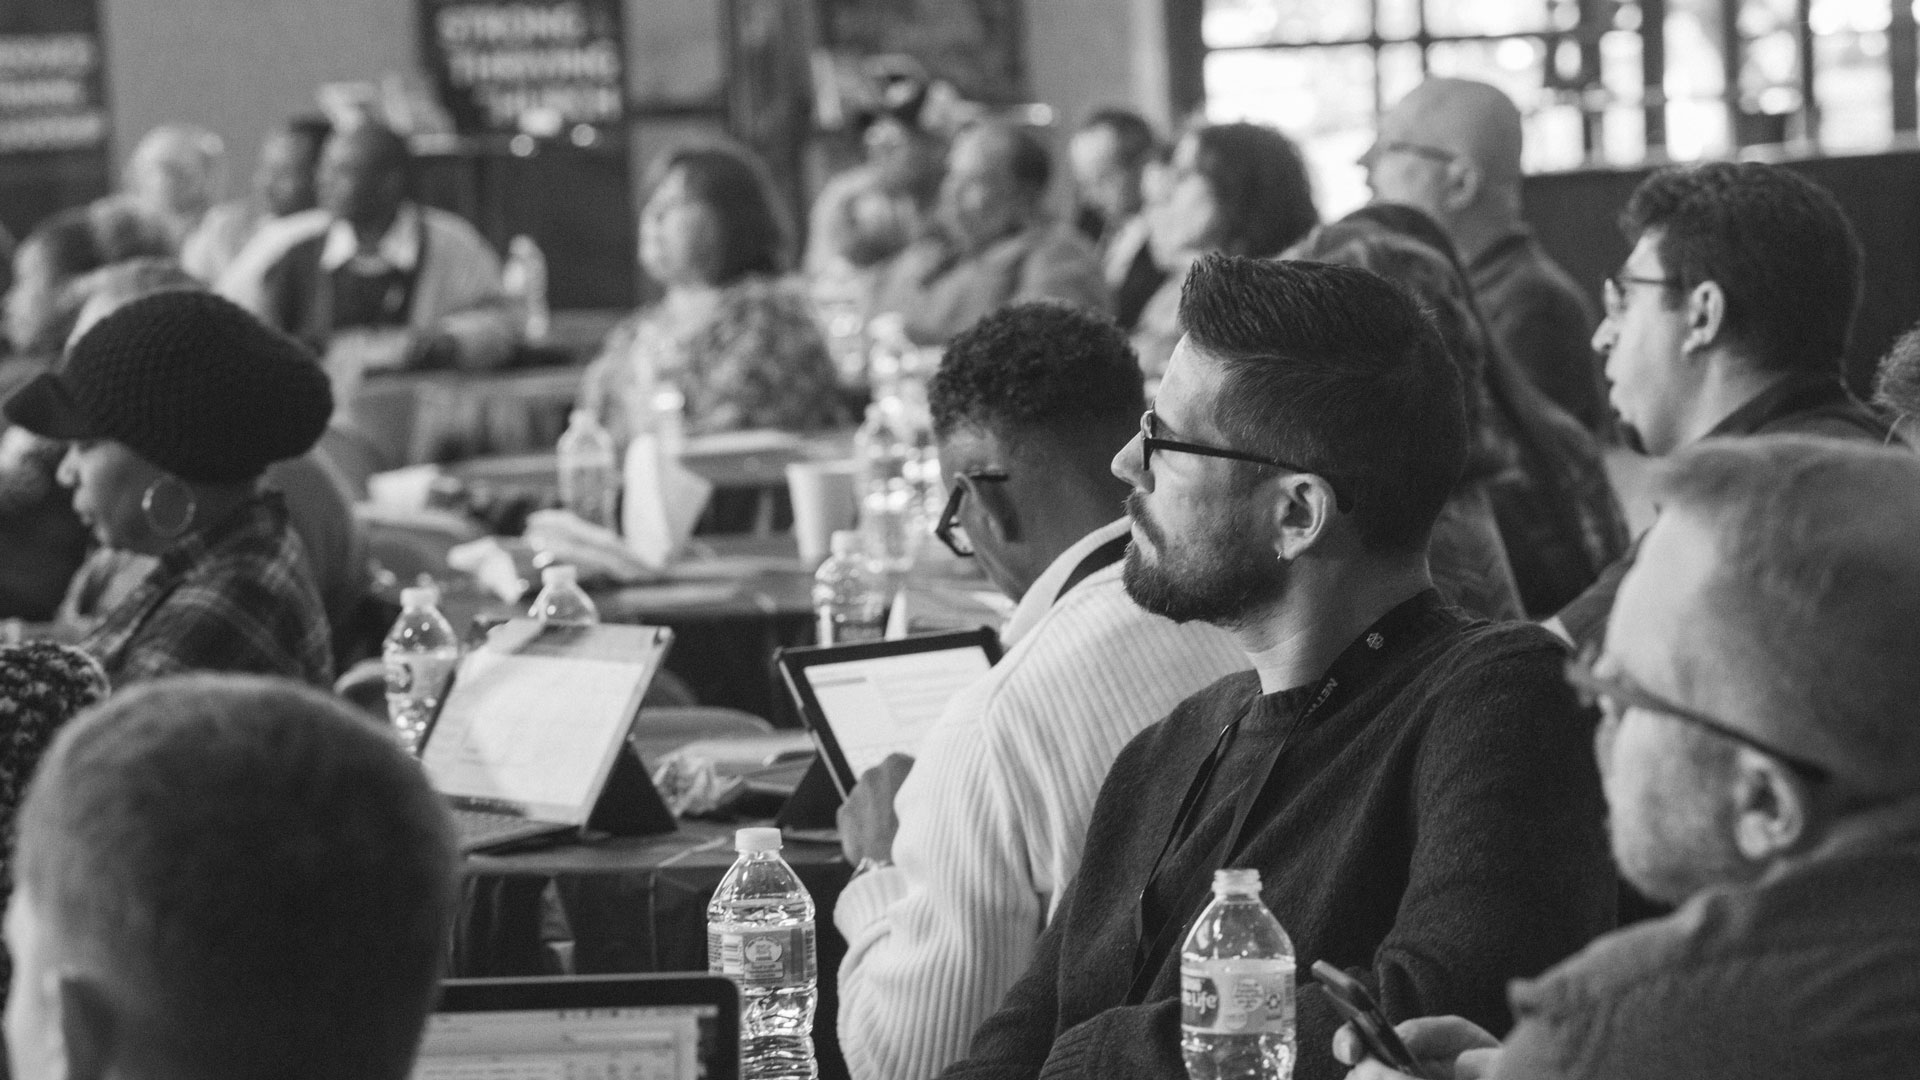 WE SUPPORT YOU - If you feel called to parent a church, to become a church planter, or become a church planting team member, we're here to support you.We provide connections, guidance and timely resources along your church planting journey.